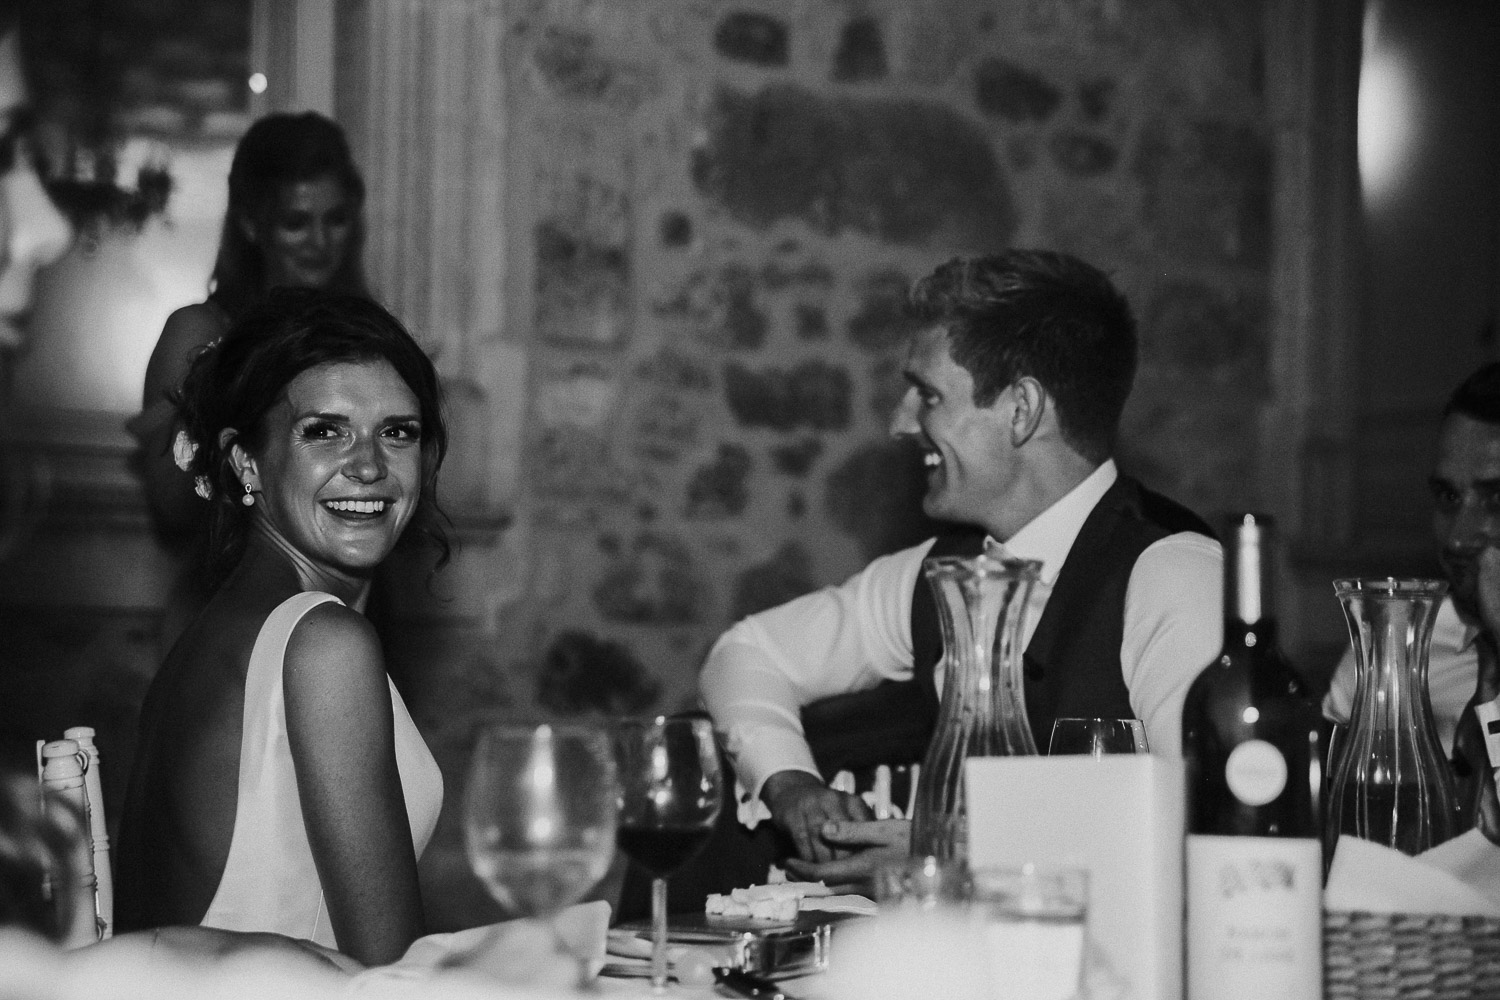 chateau_de_lisse_gers_gascony_south_west_france_family_wedding_katy_webb_photography_UK98